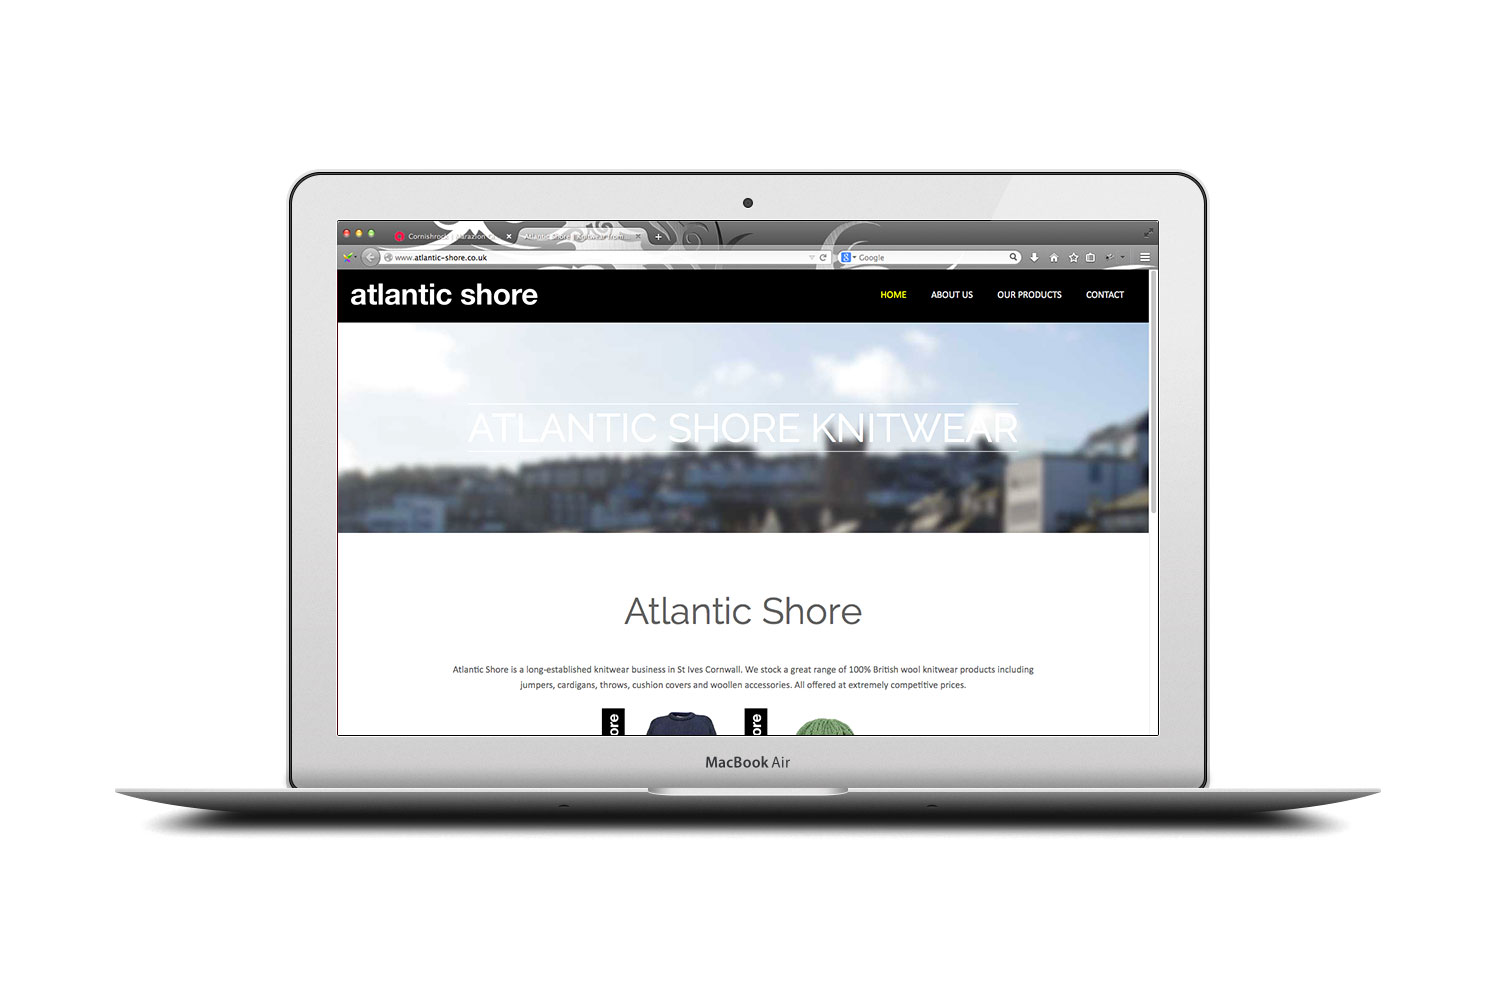 Atlantic Shore Knitwear website from cornishrock in Cornwall, professional website designers